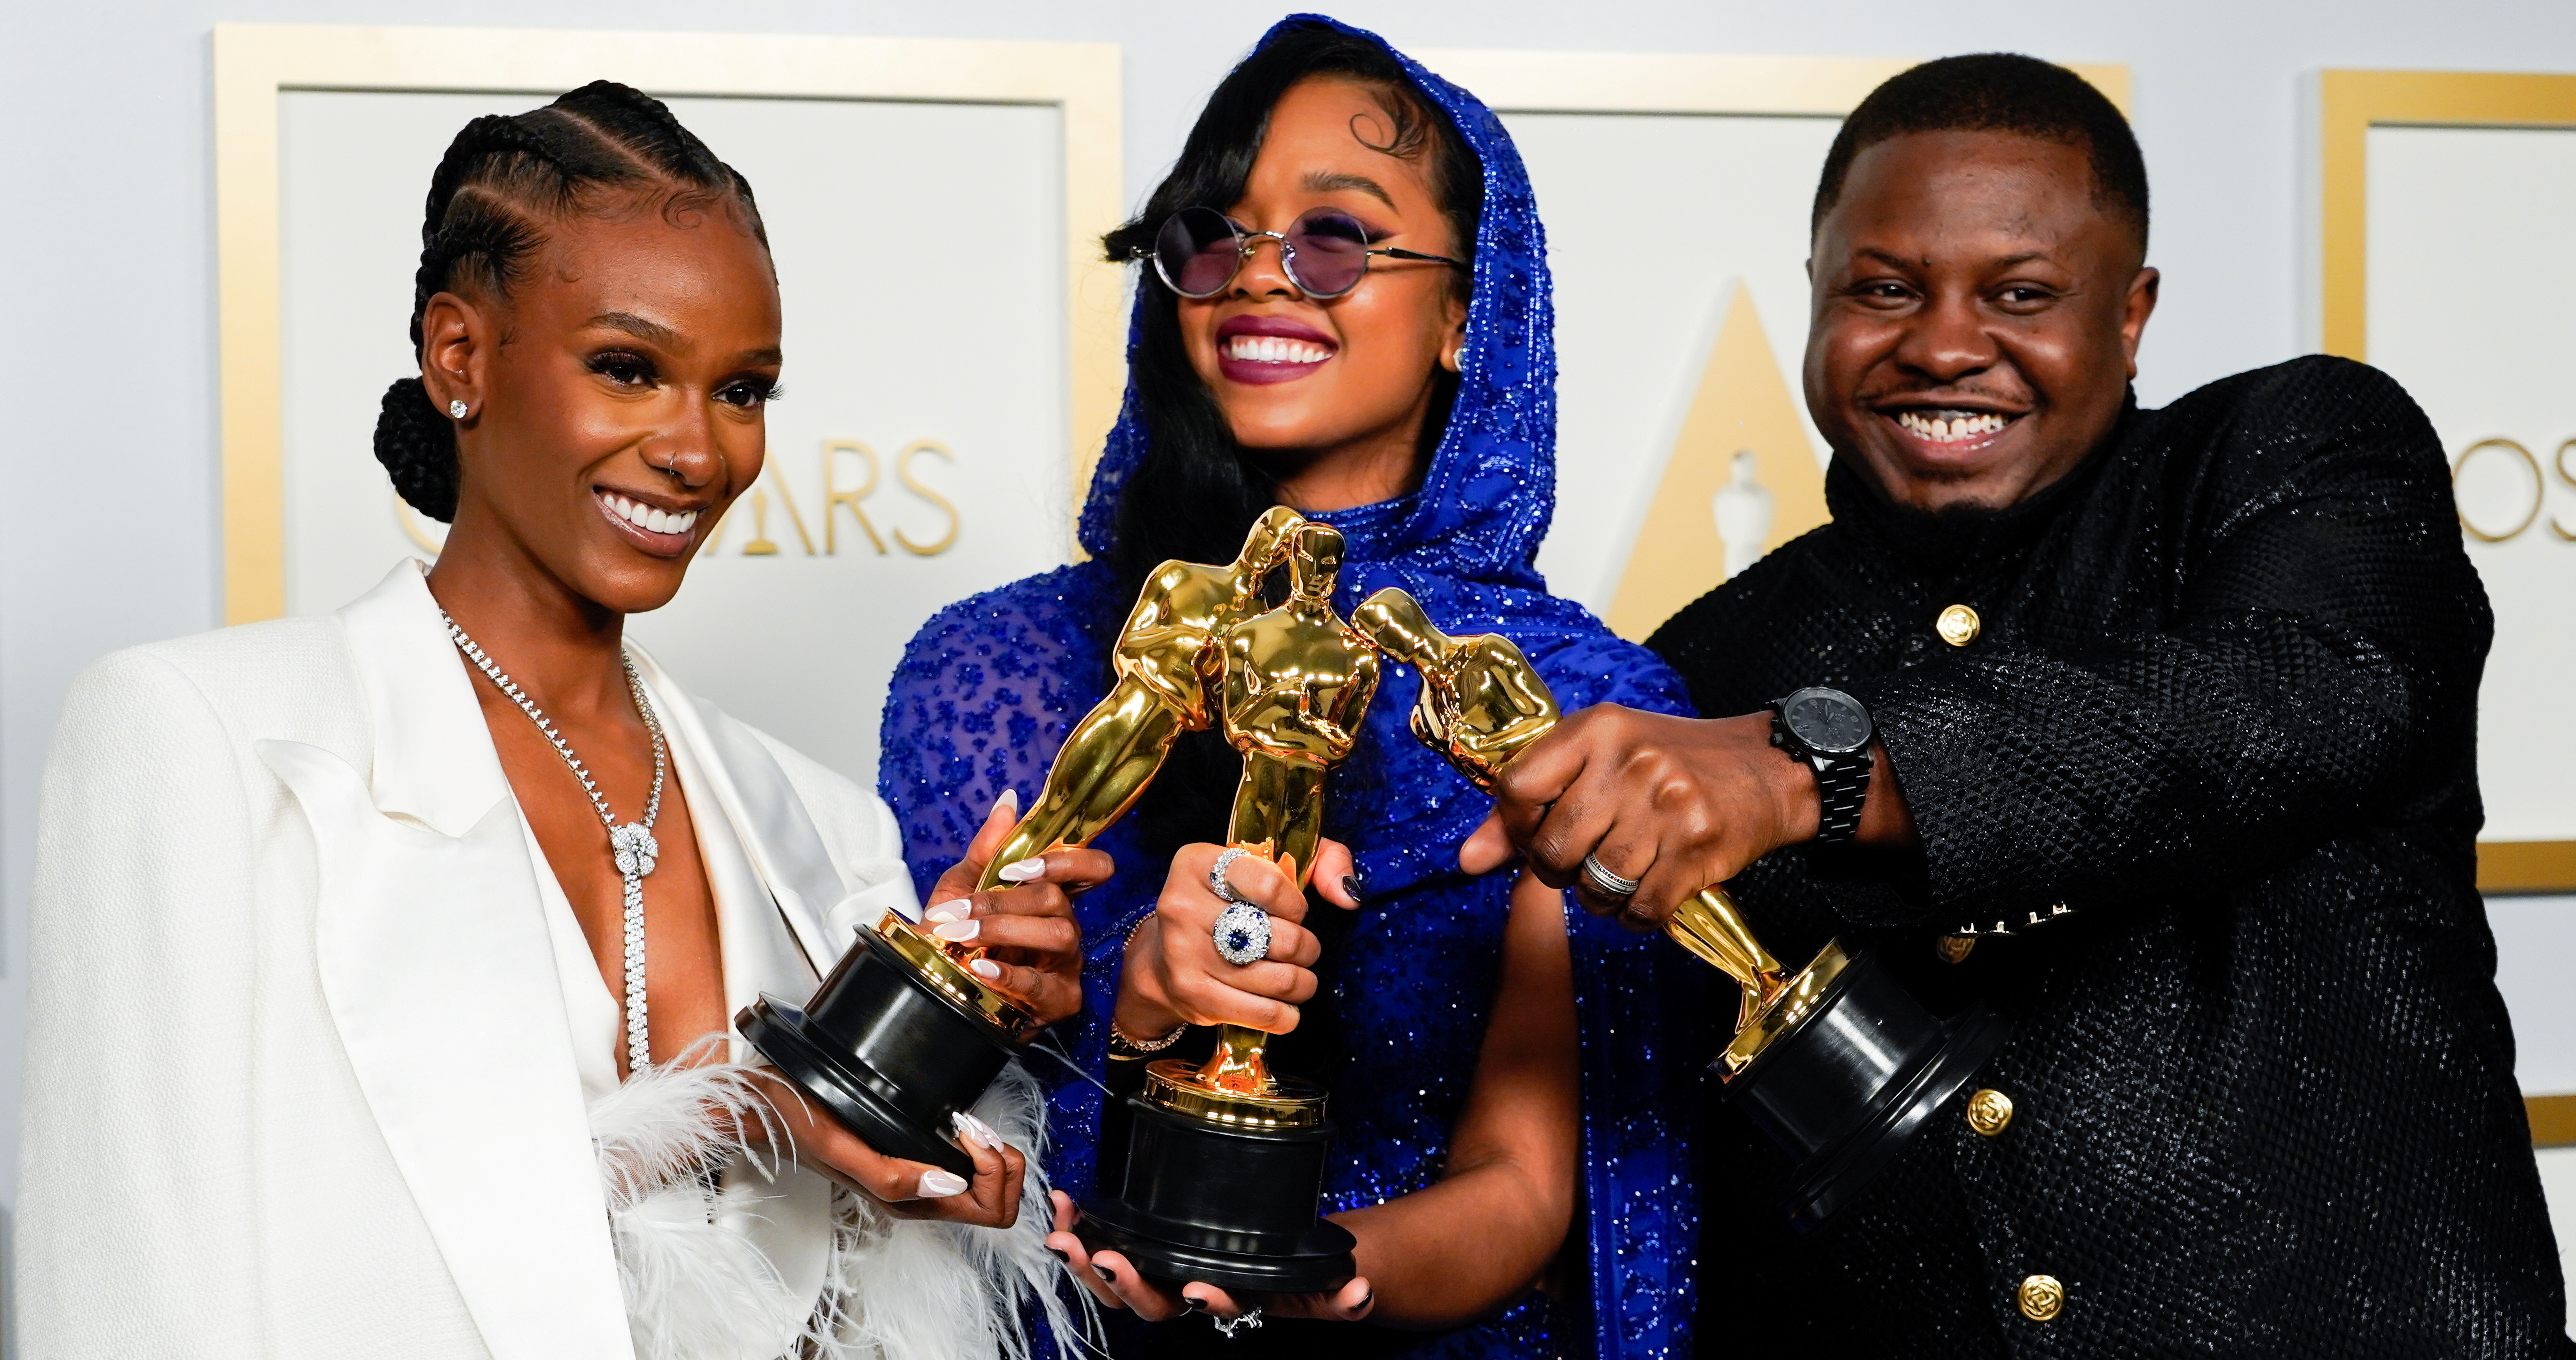 """Tiara Thomas, H.E.R. and Dernst Emile II, winners of the award for best original song for """"Fight For You"""" from """"Judas and the Black Messiah"""", pose at the press room of the Oscars, in the 93rd Academy Awards in Los Angeles, California, U.S., April 25, 2021. Chris Pizzello/Pool via REUTERS - RC2O3N94P05H"""